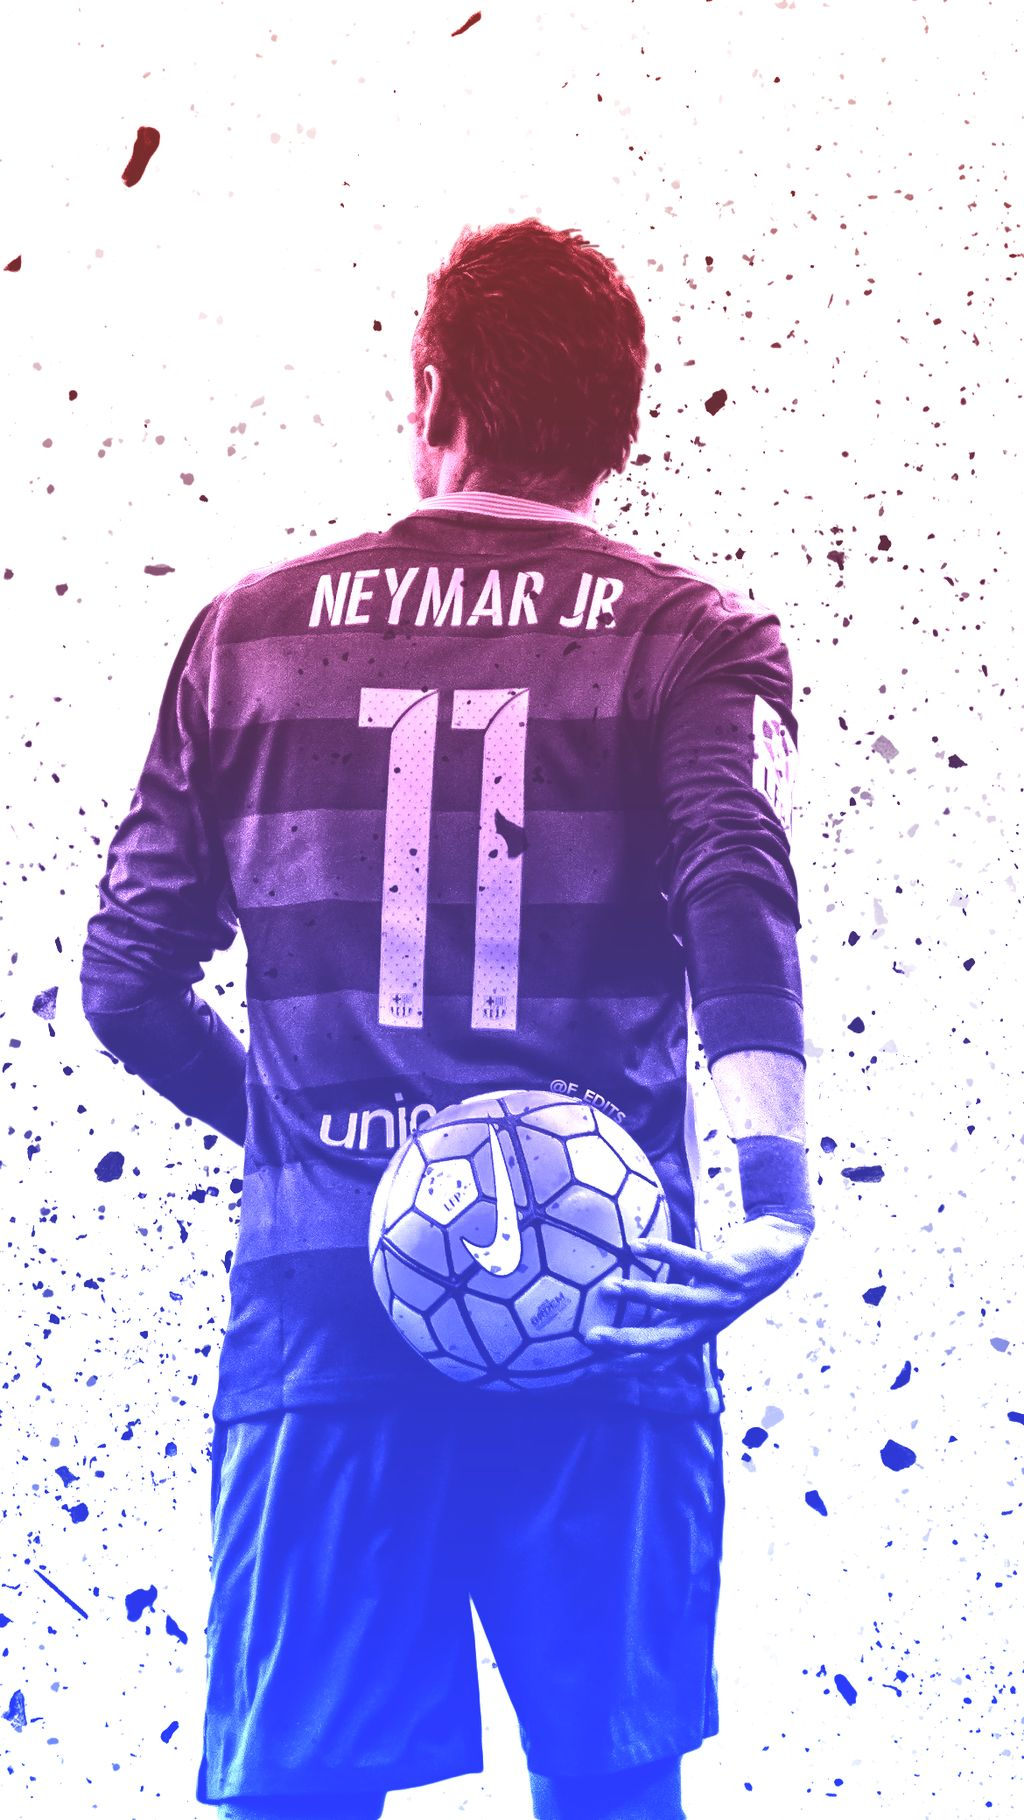 best 20+ neymar wallpaper ideas on pinterest | fútbol de messi